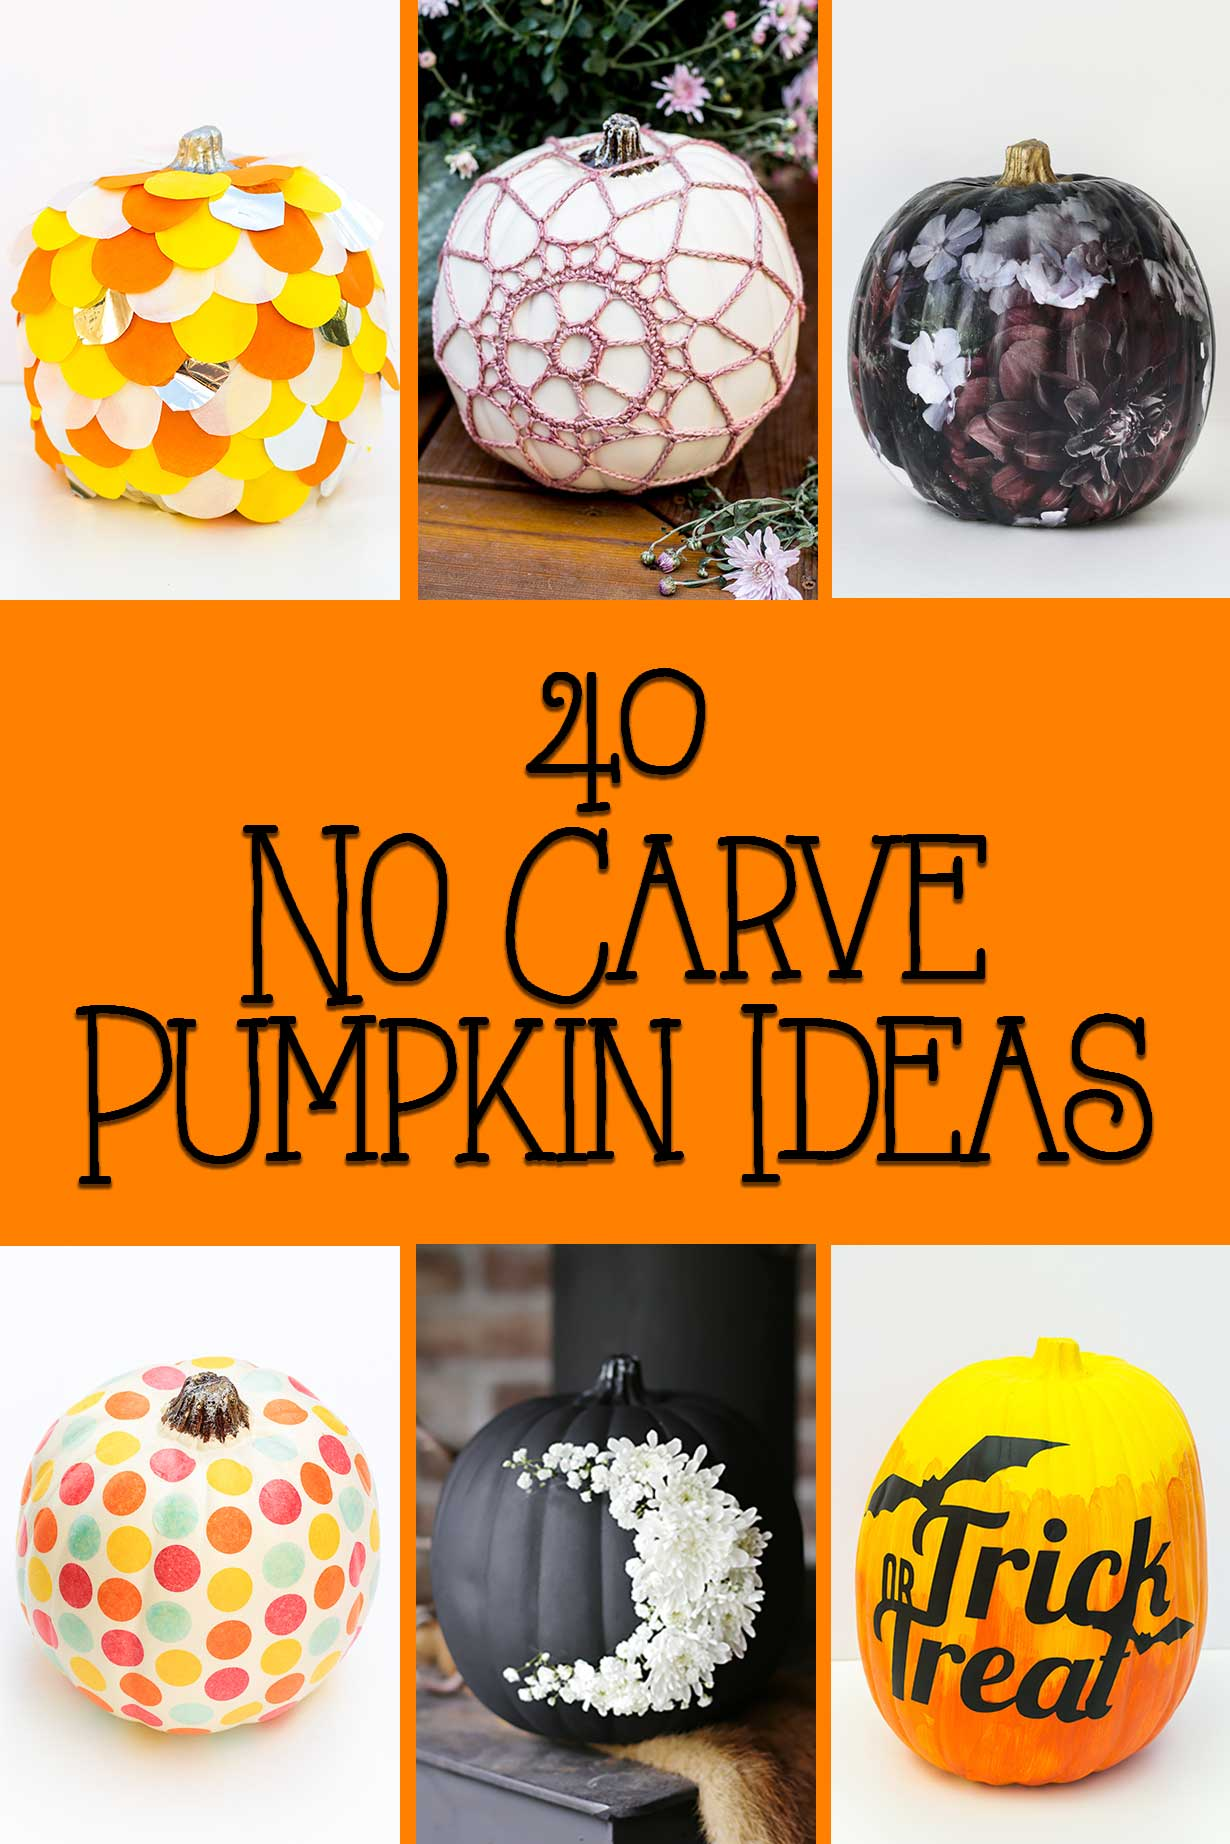 40 No Carve Pumpkin Ideas for you to use this Halloween